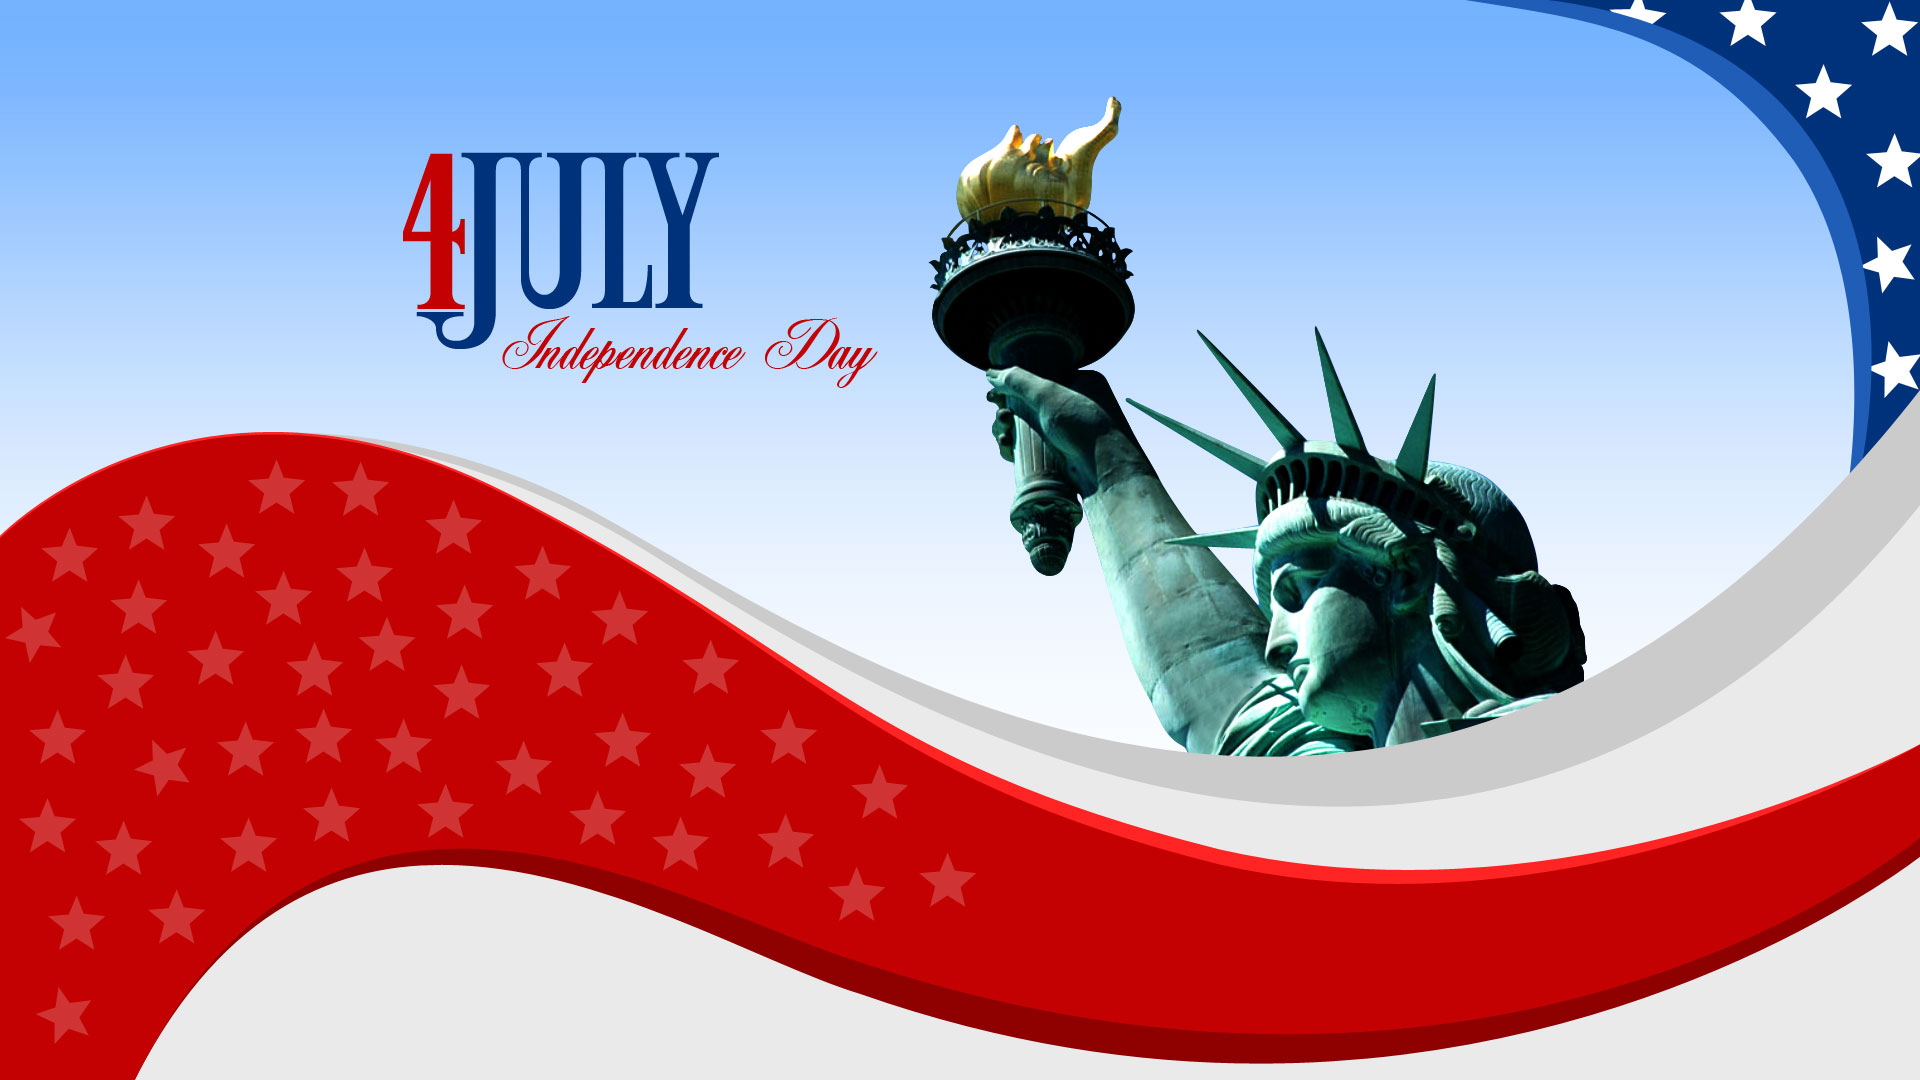 day 2015 wallpaper of united states of american independence day 2015 1920x1080